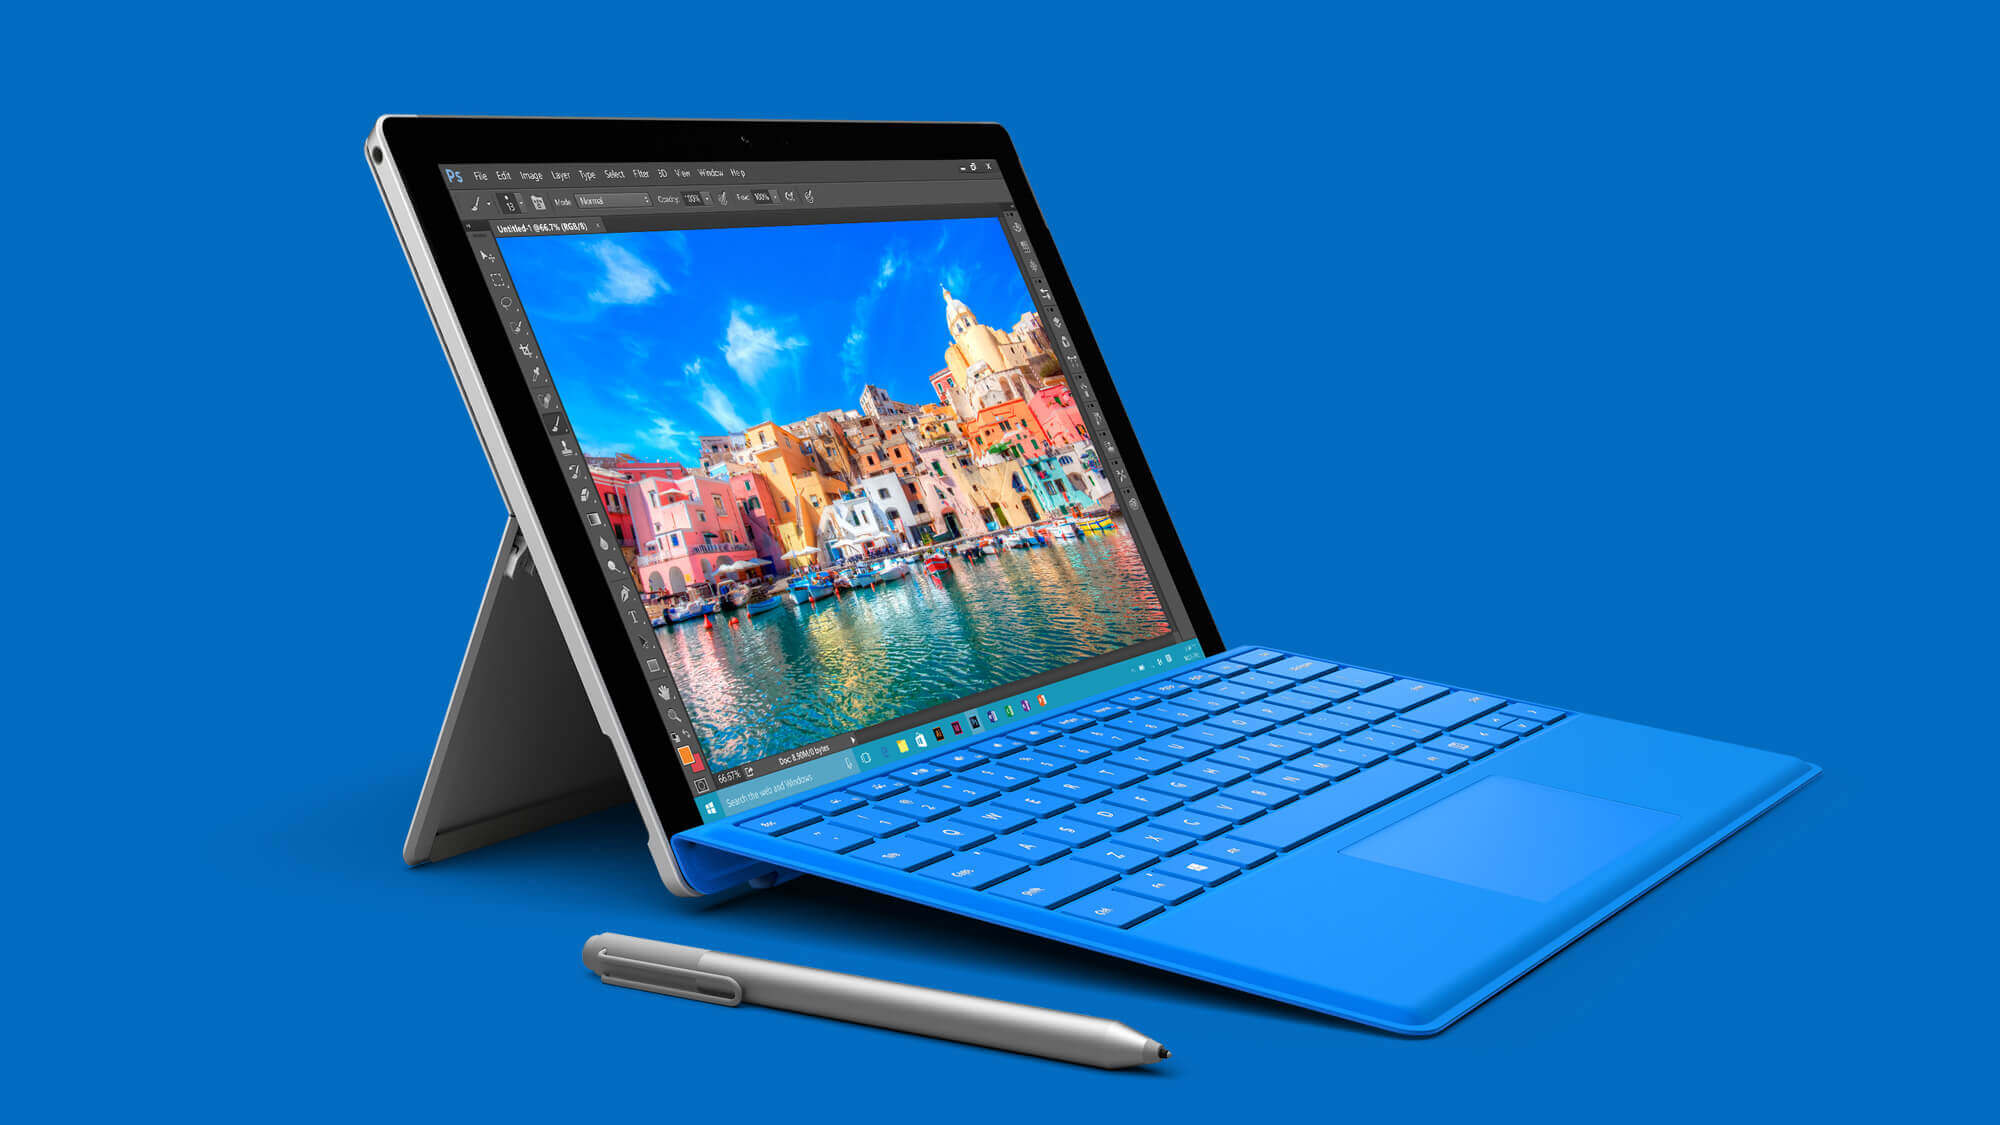 The ultimate experience with Surface Pro